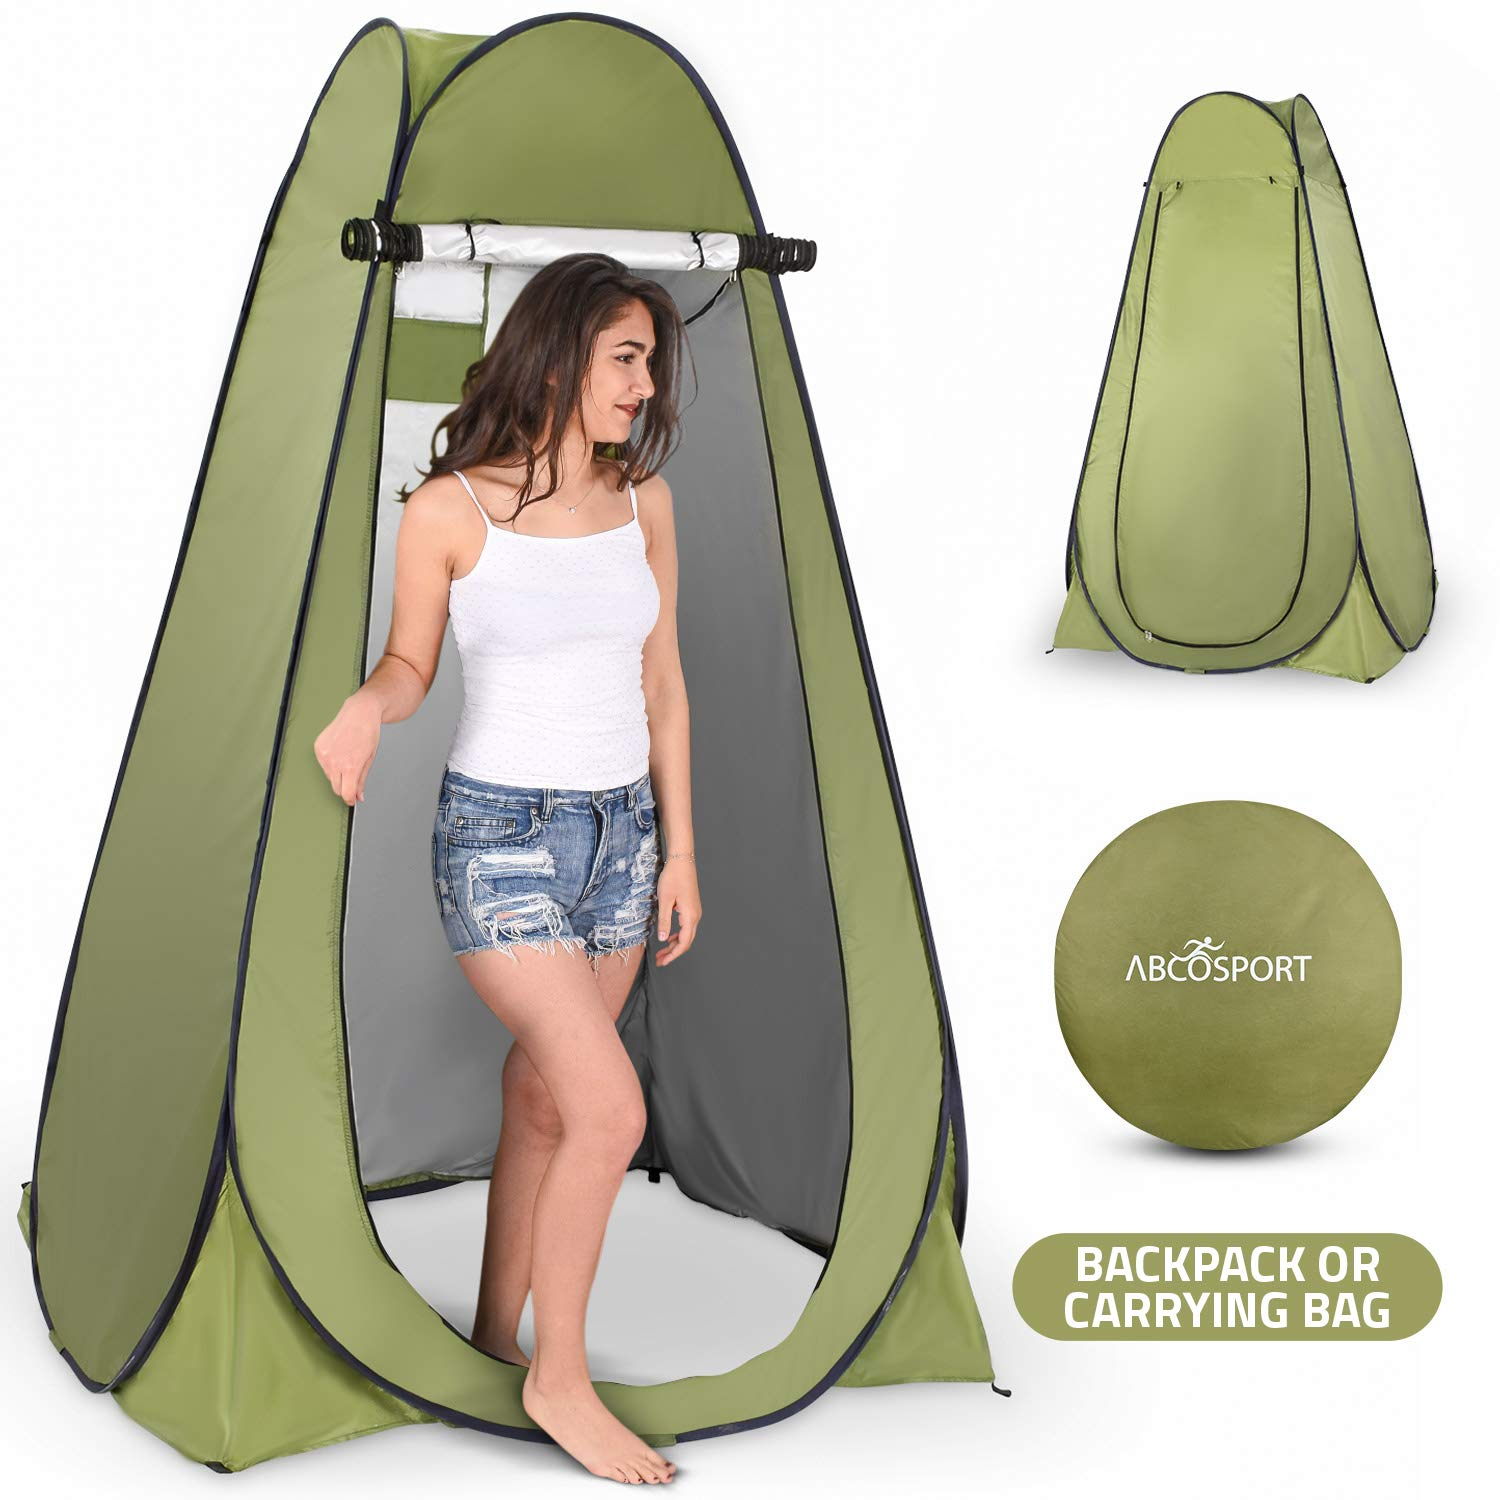 Pop Up Privacy Tent - Instant Portable Outdoor Shower Tent, Camp Toilet, Changing Room, Rain Shelter with Window - for Camping and Beach - Easy Set Up, Foldable with Carry Bag - Lightweight and Sturdy by Abco Tech